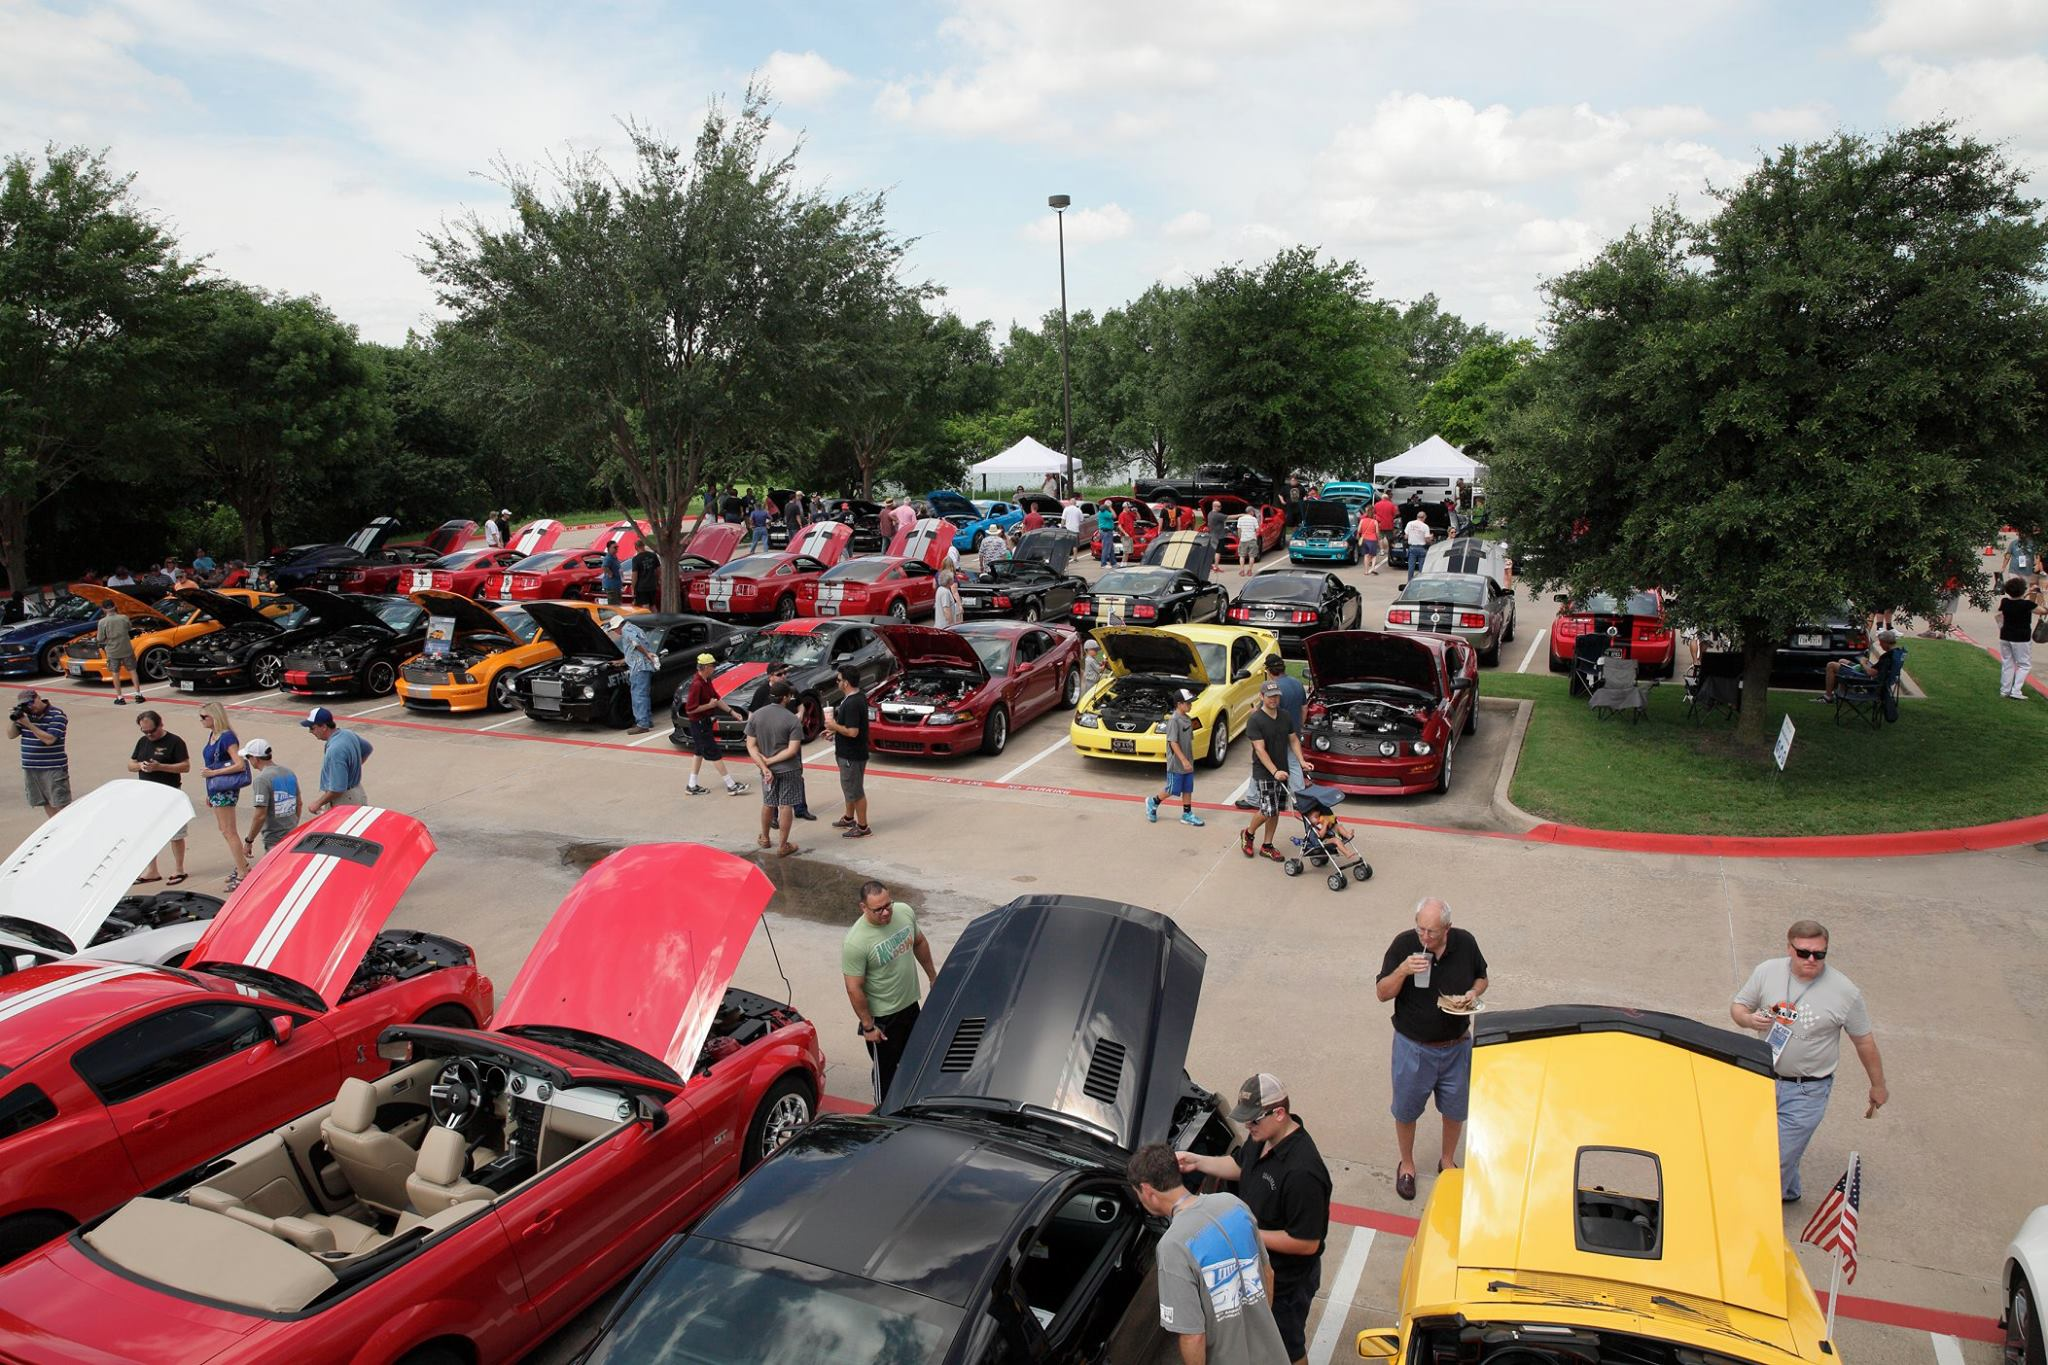 Shelby Car Show in Plano